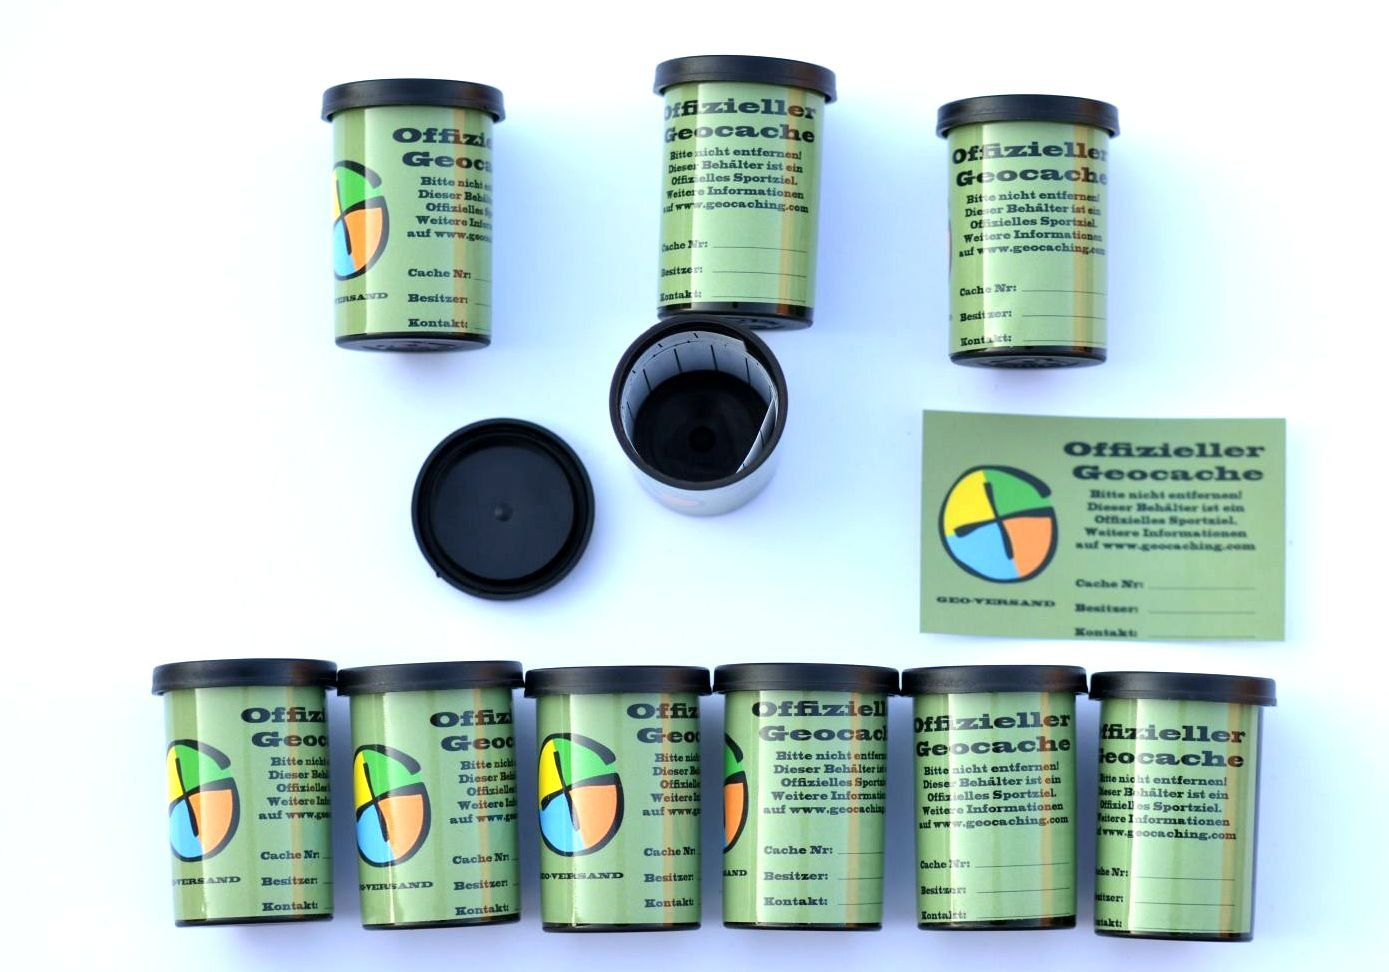 Geocaching Containers Set with 10 Film Canisters, 10 Waterproof Log Strips, 10 Container Stickers, Rite in the Rain